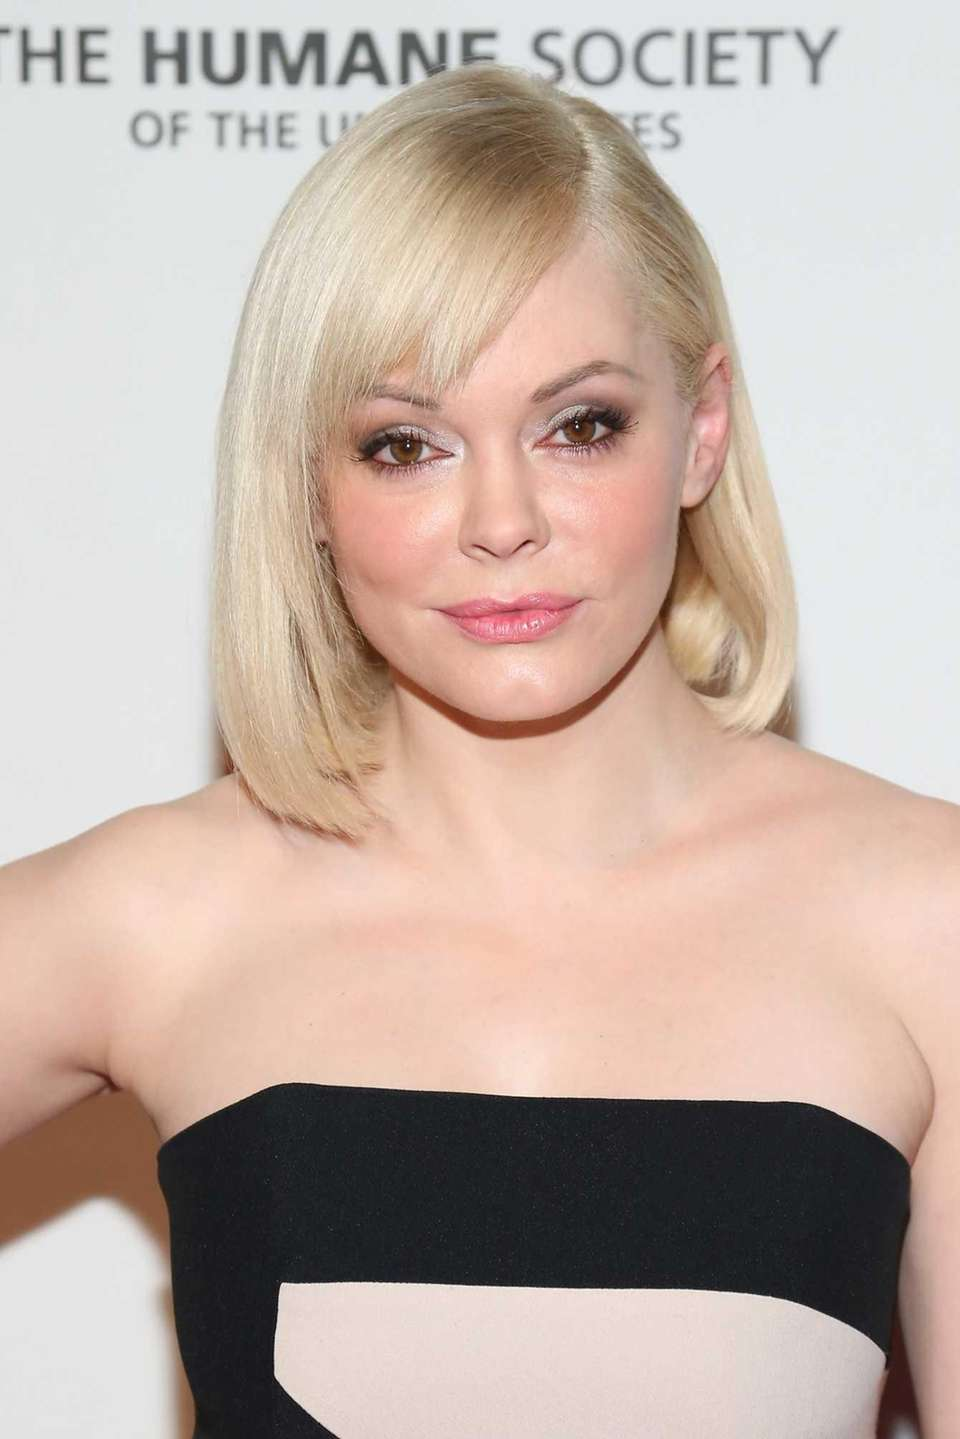 Sept. 5: Rose McGowan